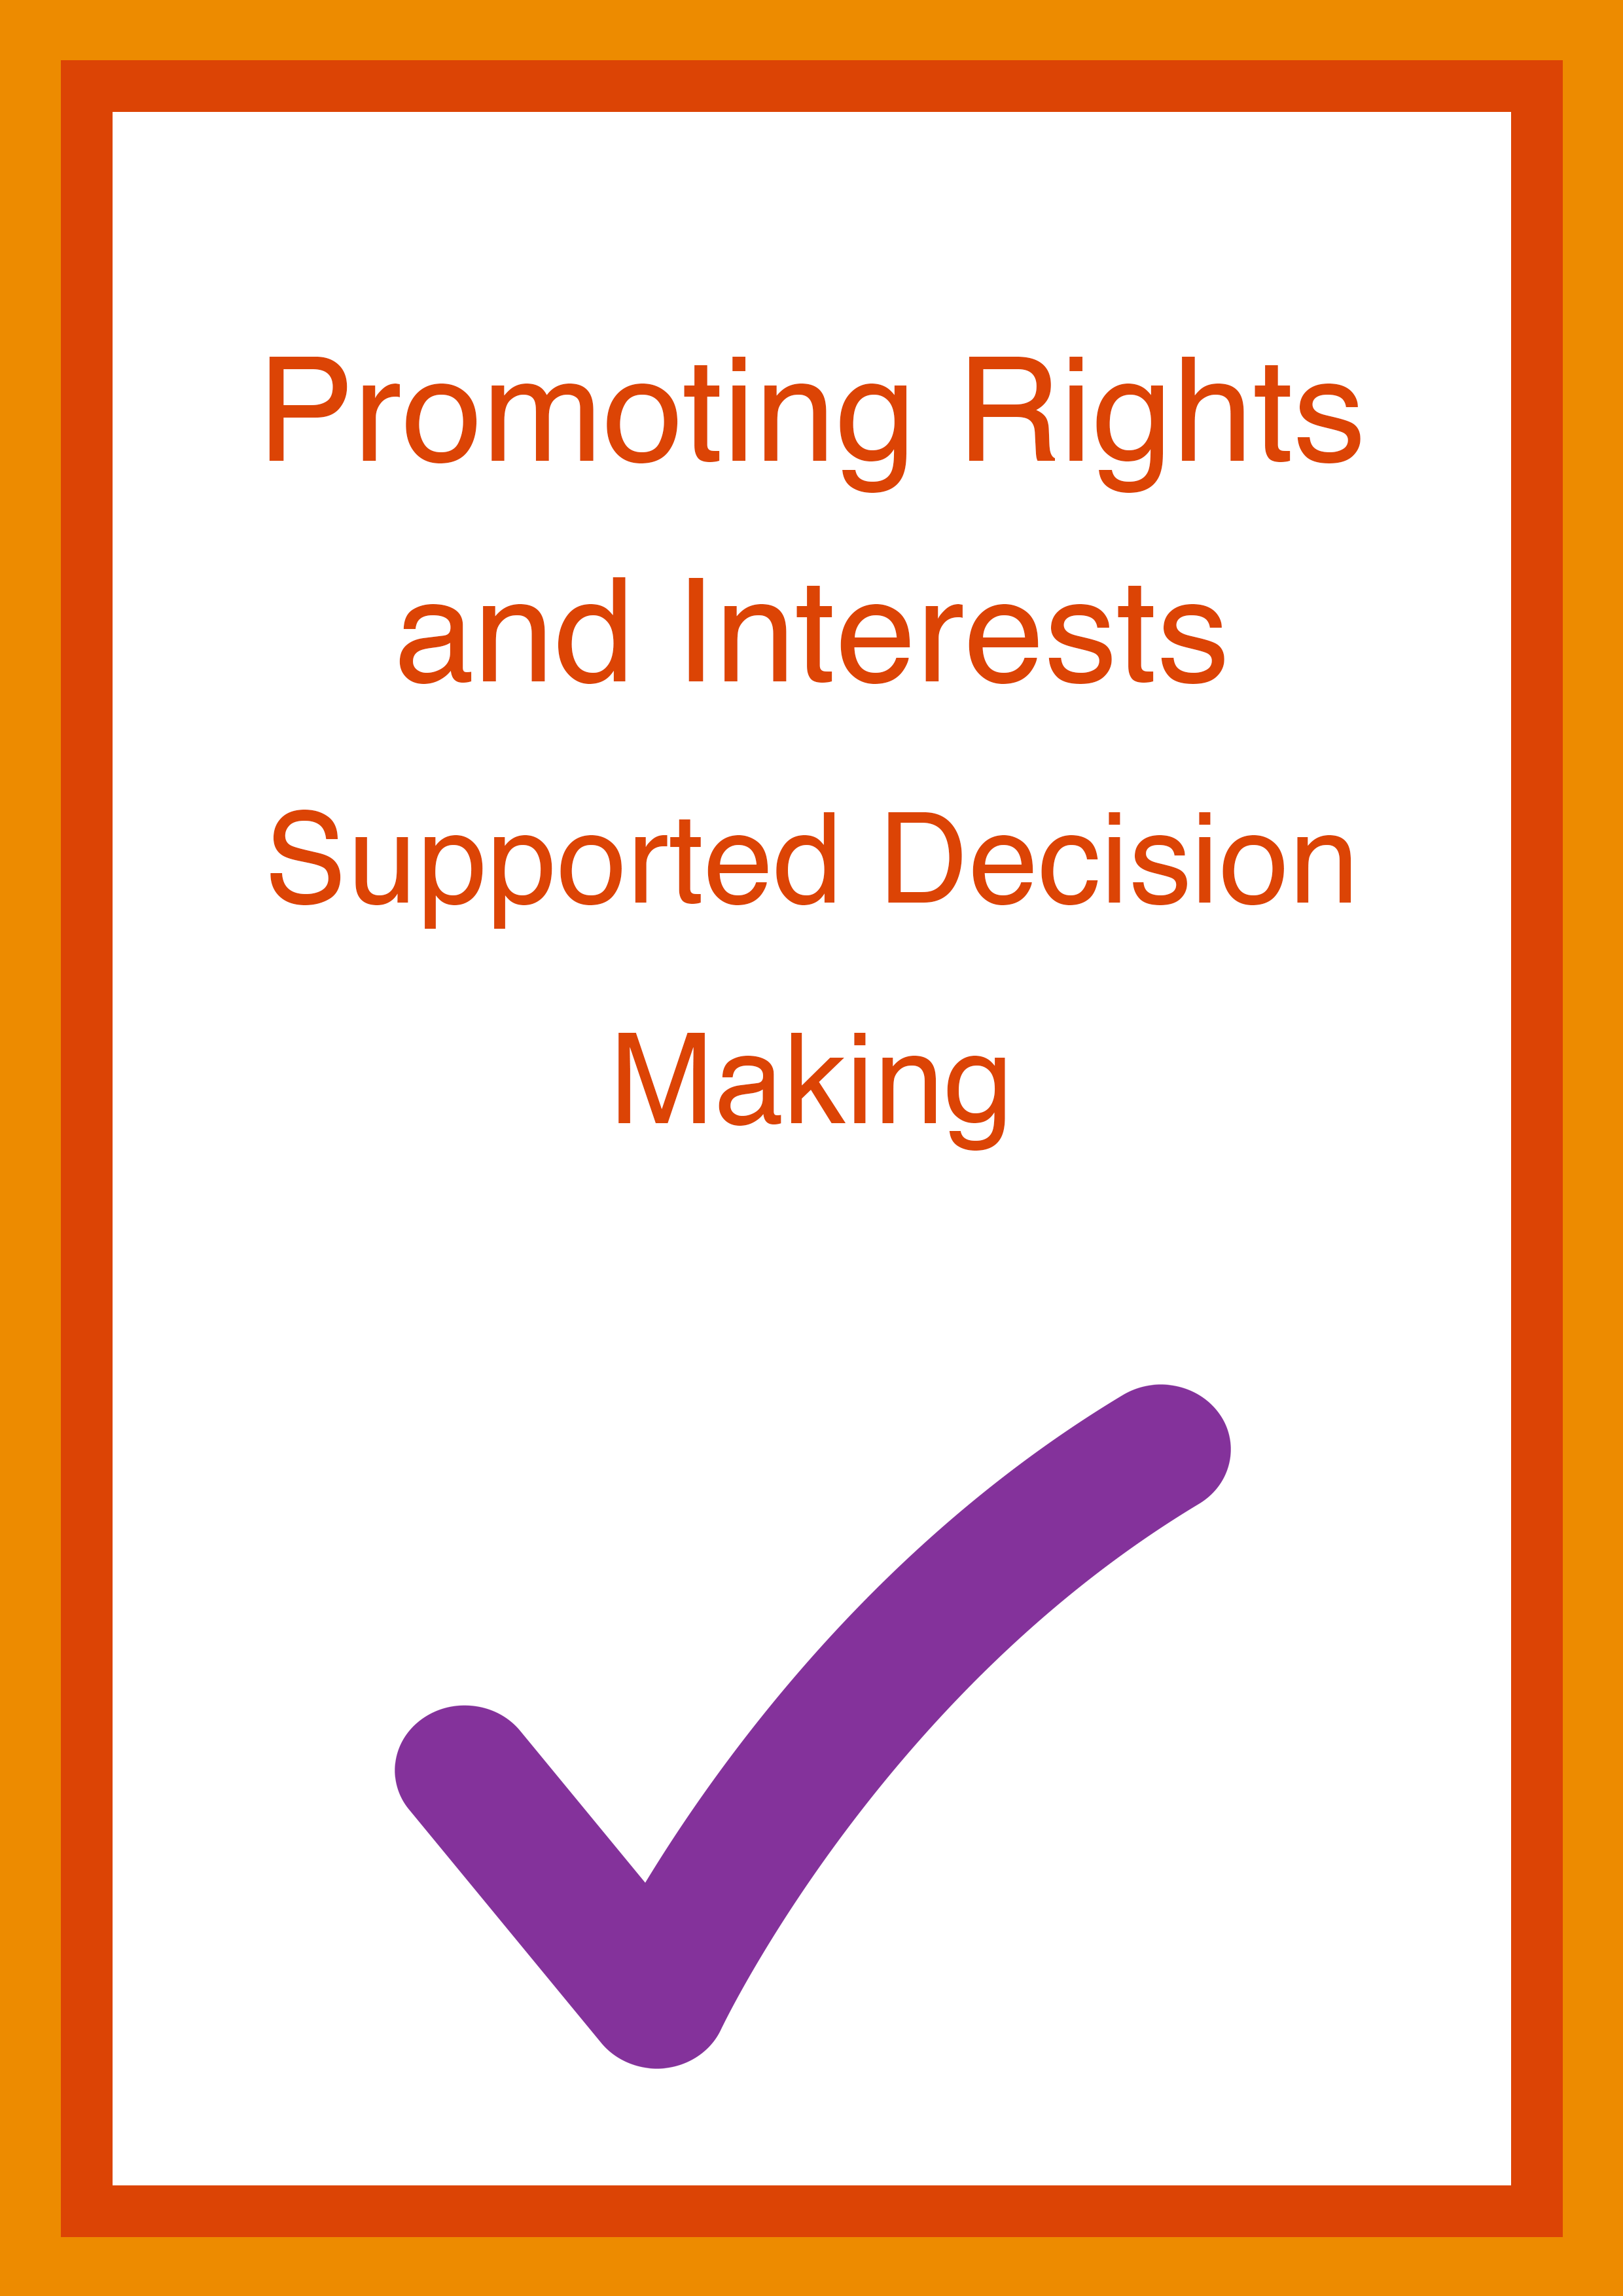 Cover art for: Promoting Rights and Interests: Supported Decision Making Annual Report